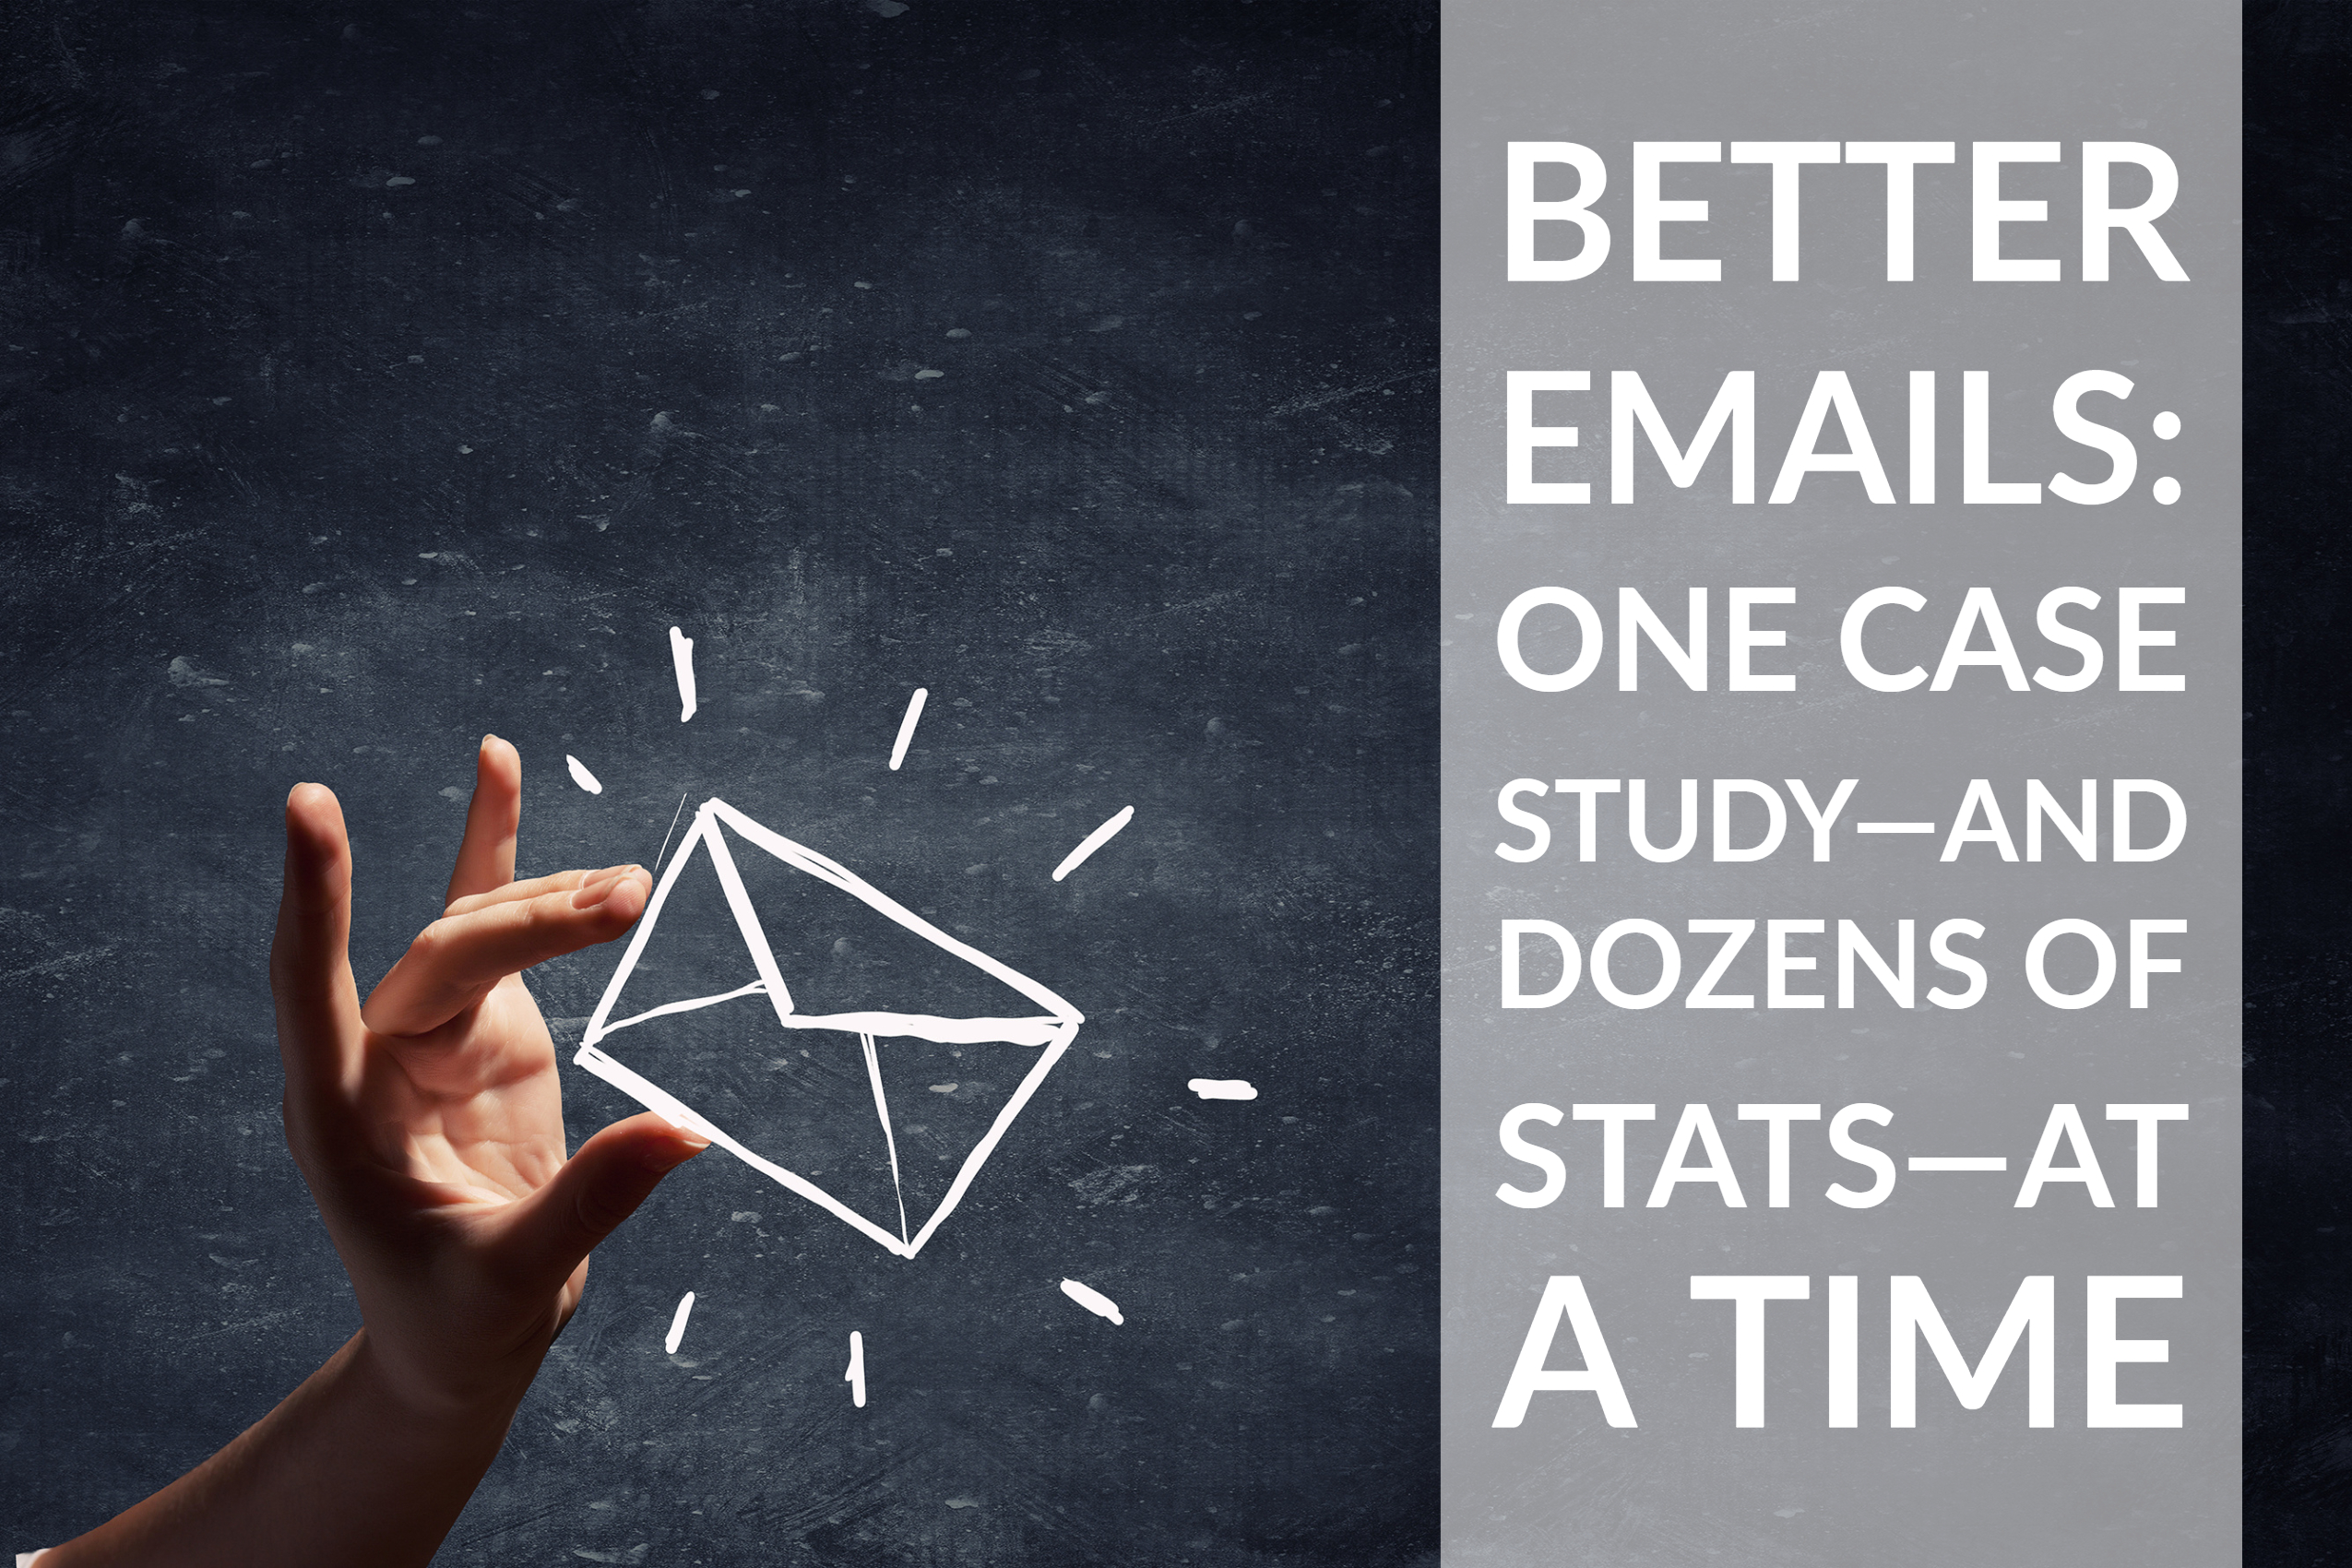 Better Emails_ One Case Study—And Dozens Of Stats—At A Time